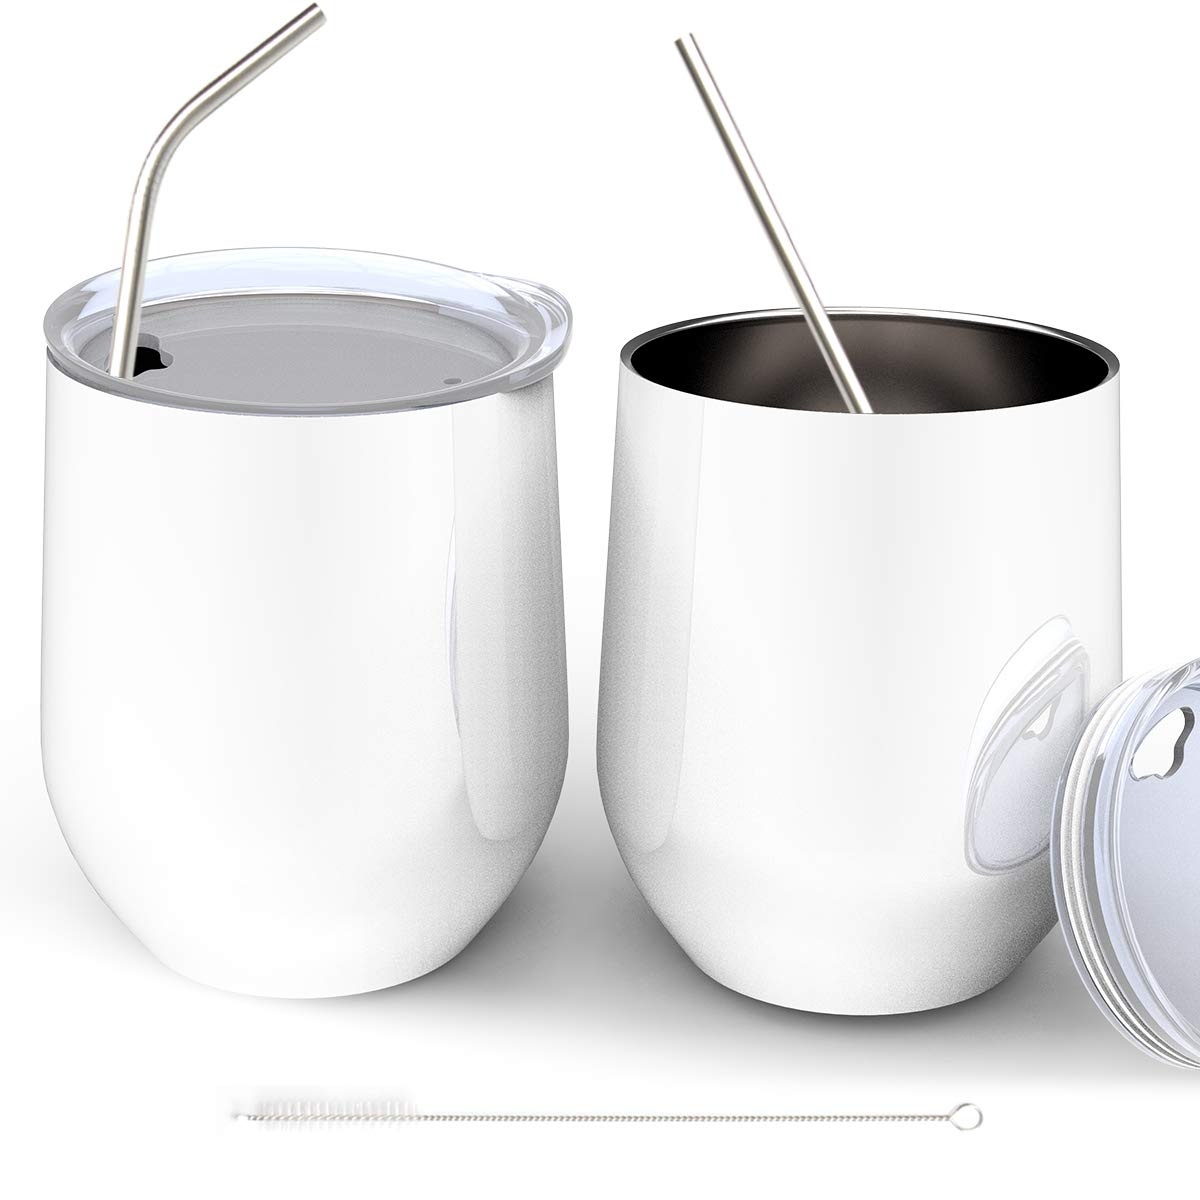 2 PCS Wine Tumbler with Lid and Straw, PAMISO 12 oz Double-Insulated Stainless Steel Cup for Wine, Coffee, Drinks, Home or Office (White)